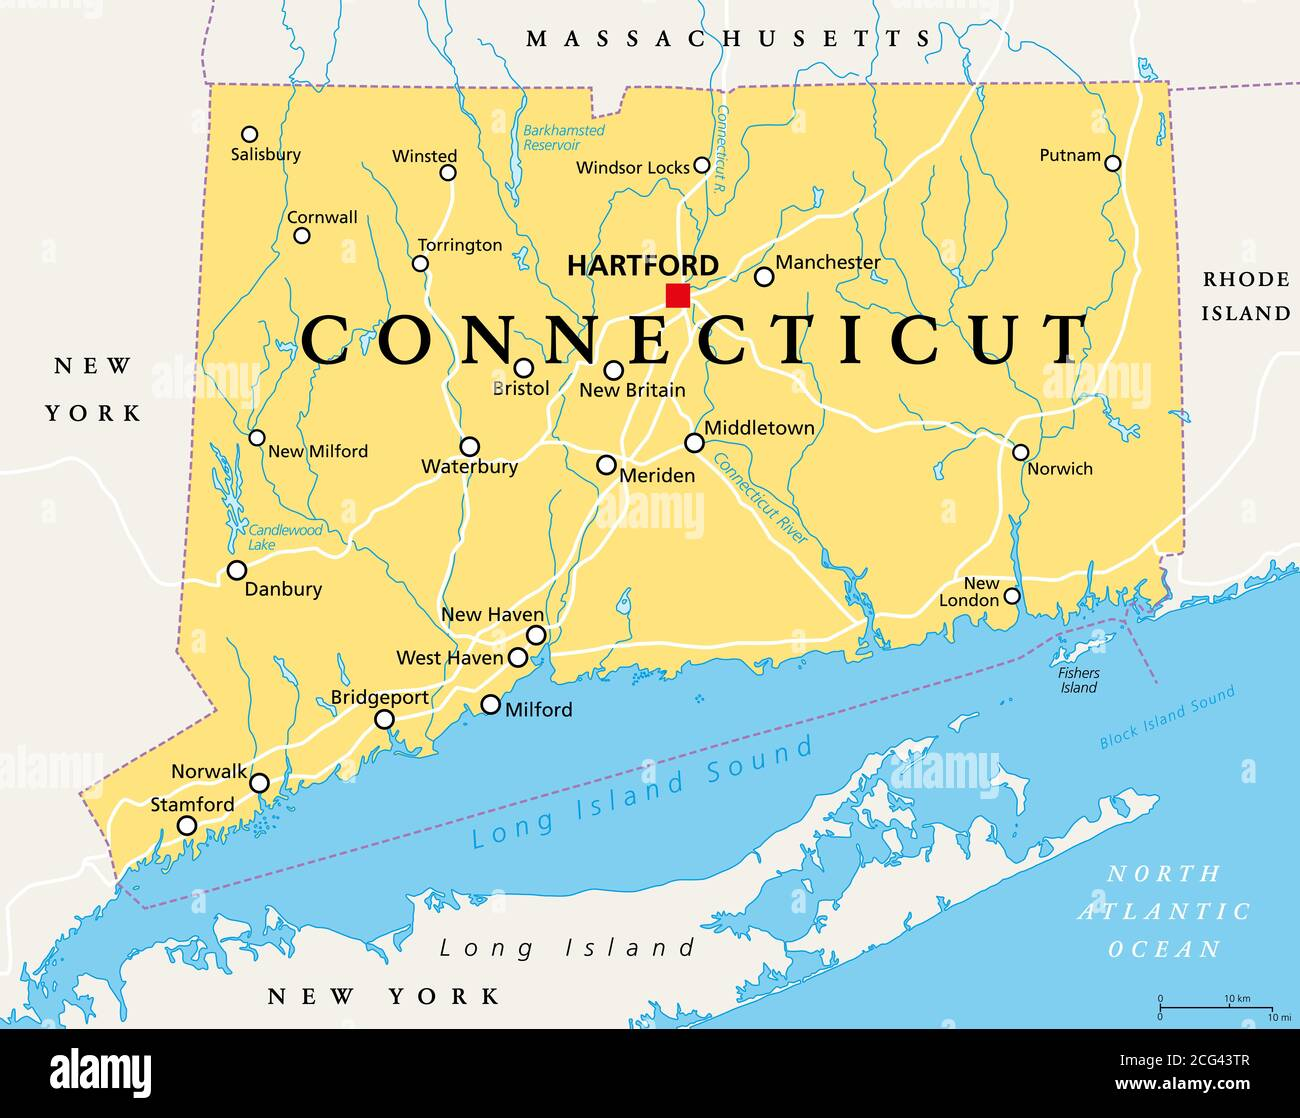 Image of: Connecticut Political Map With Capital Hartford State Of Connecticut Ct The Southernmost State In The New England Region Of The United States Stock Photo Alamy